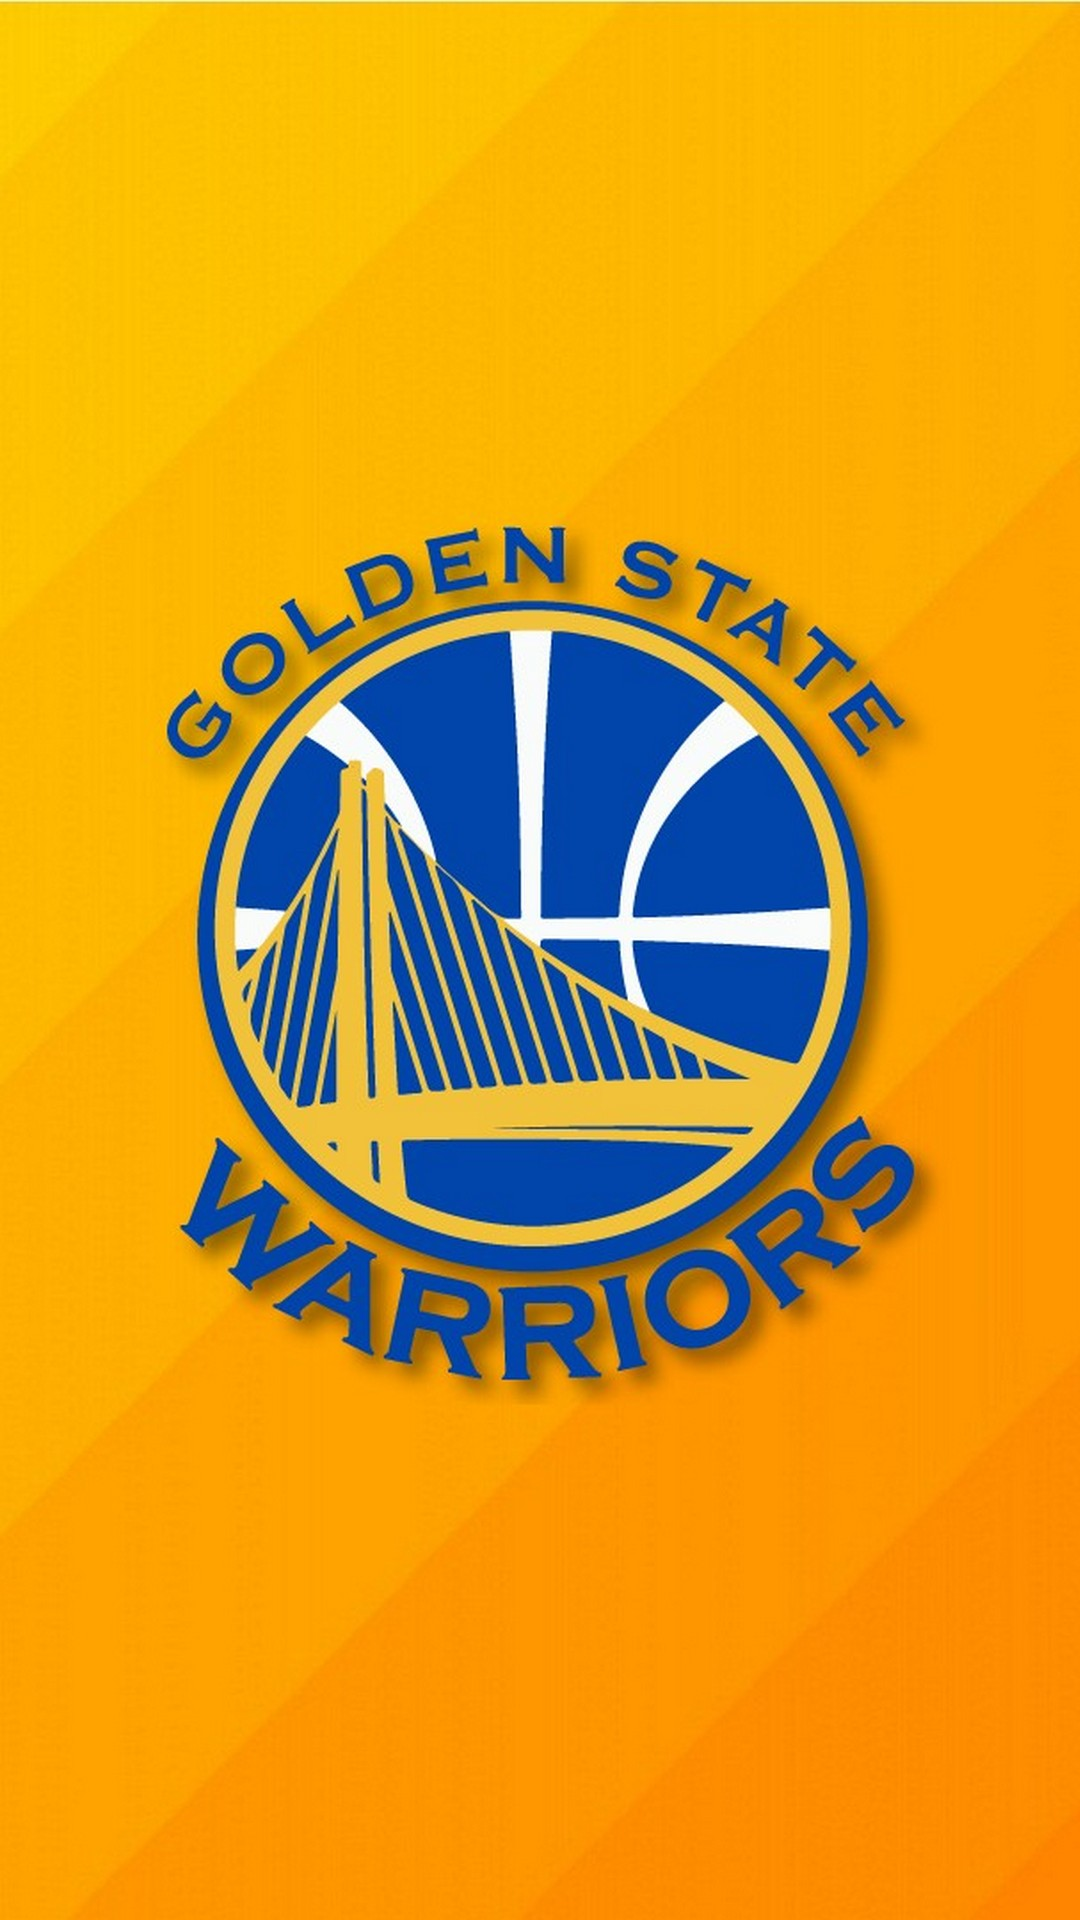 Golden State Warriors Wallpaper iPhone